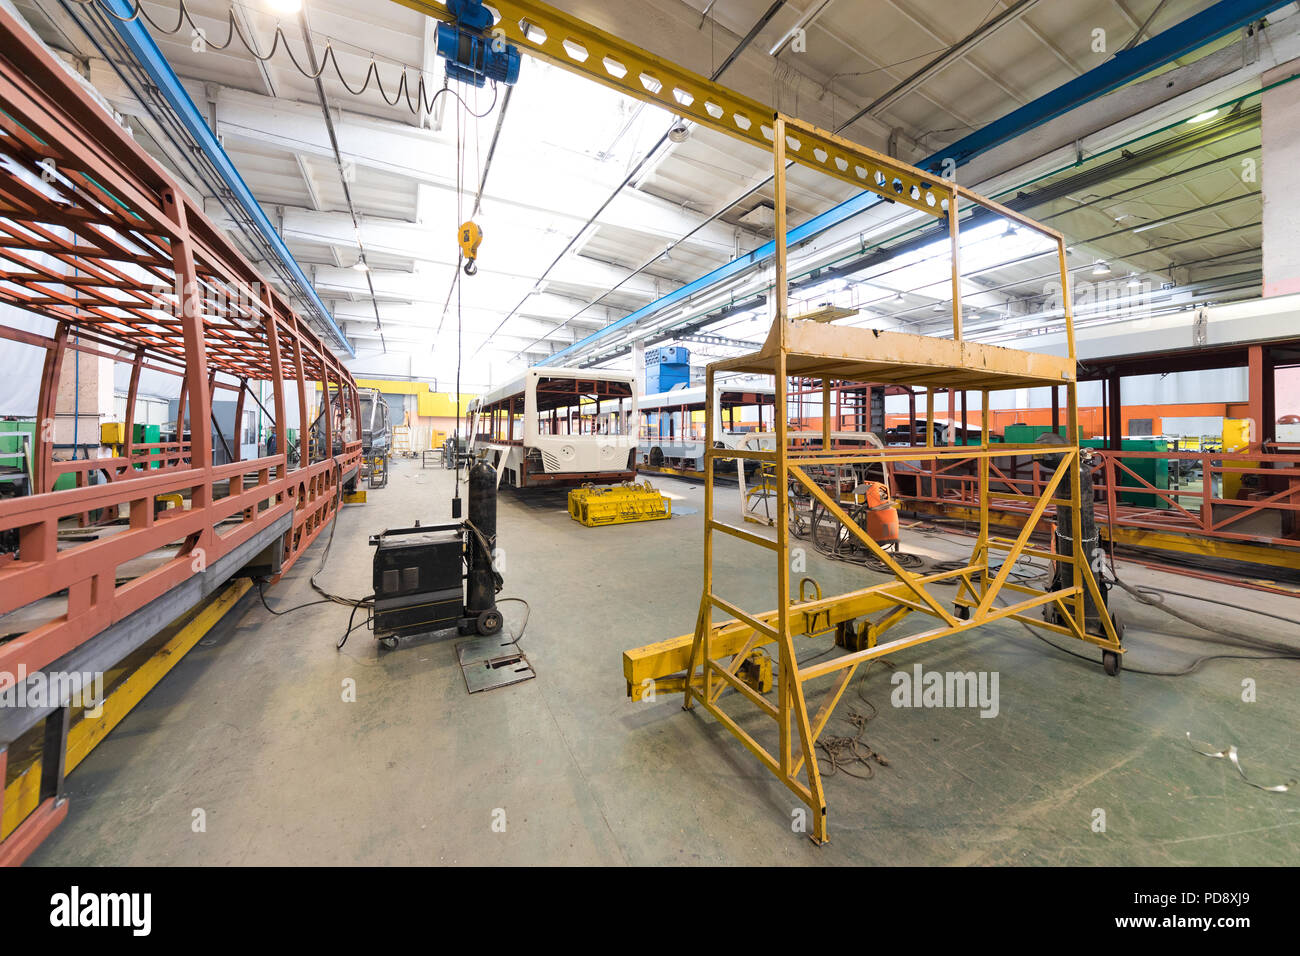 Bus production manufacture - Stock Image